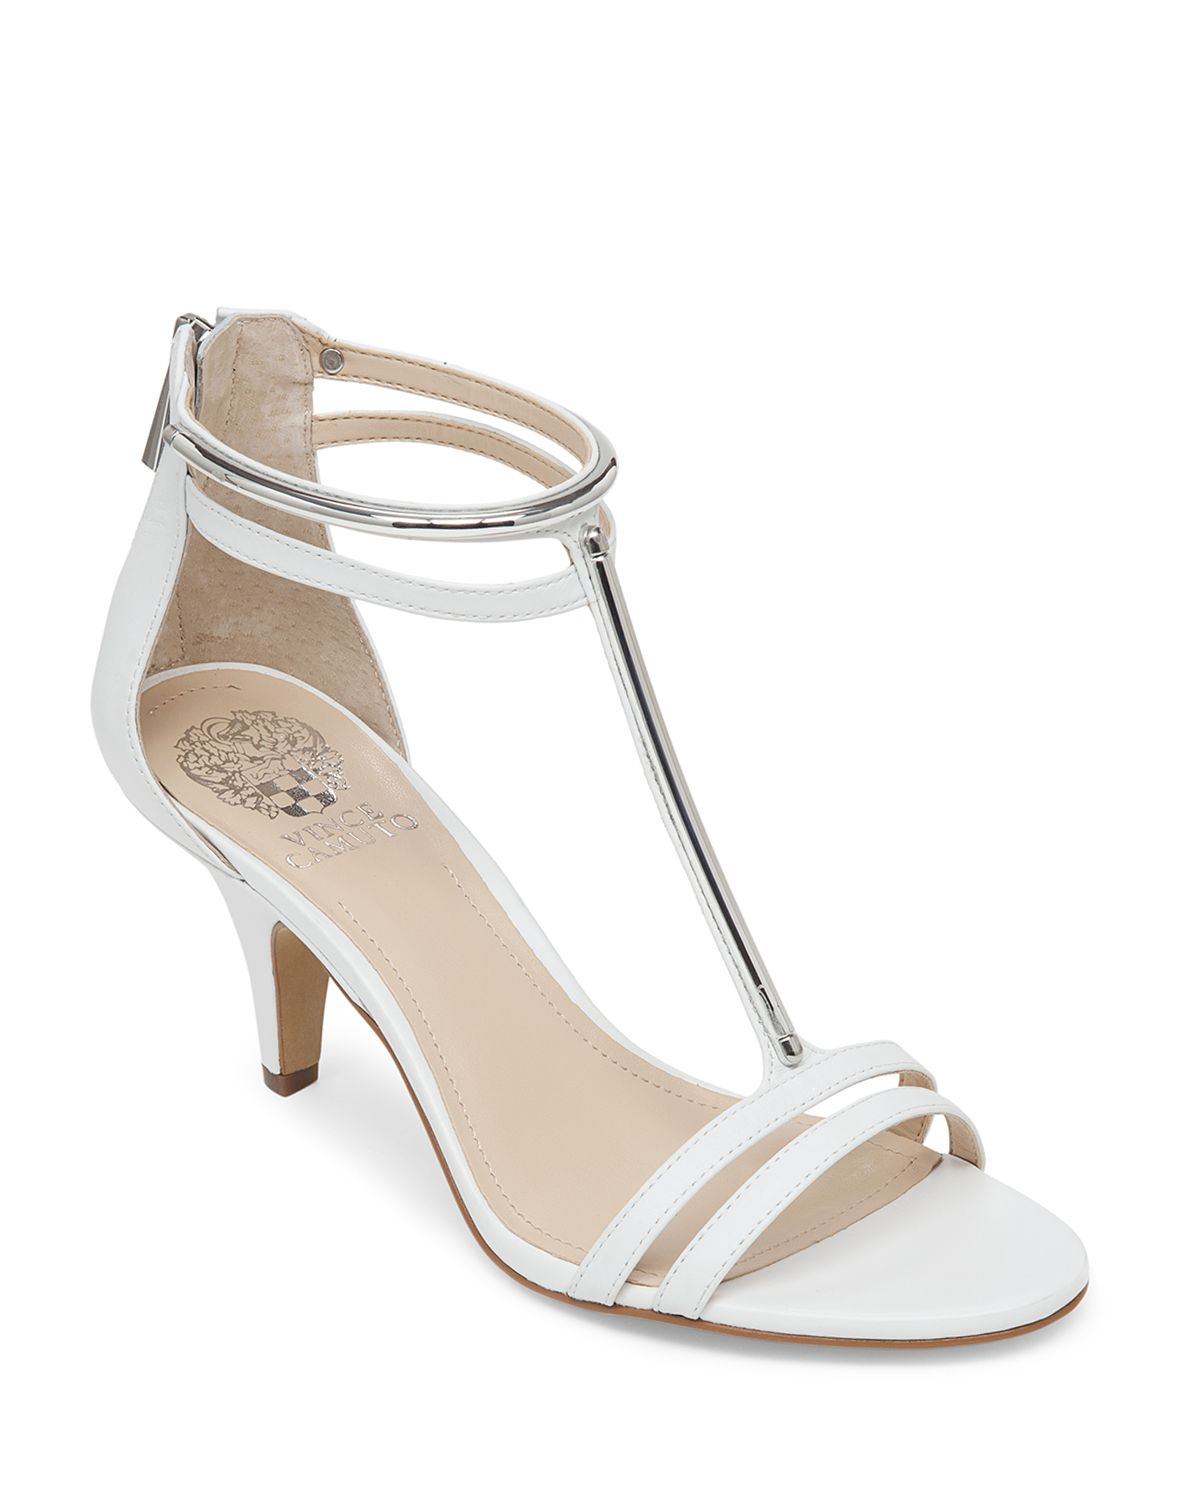 Vince Camuto Sandals Mitzy Mid Heel In White New Ivory